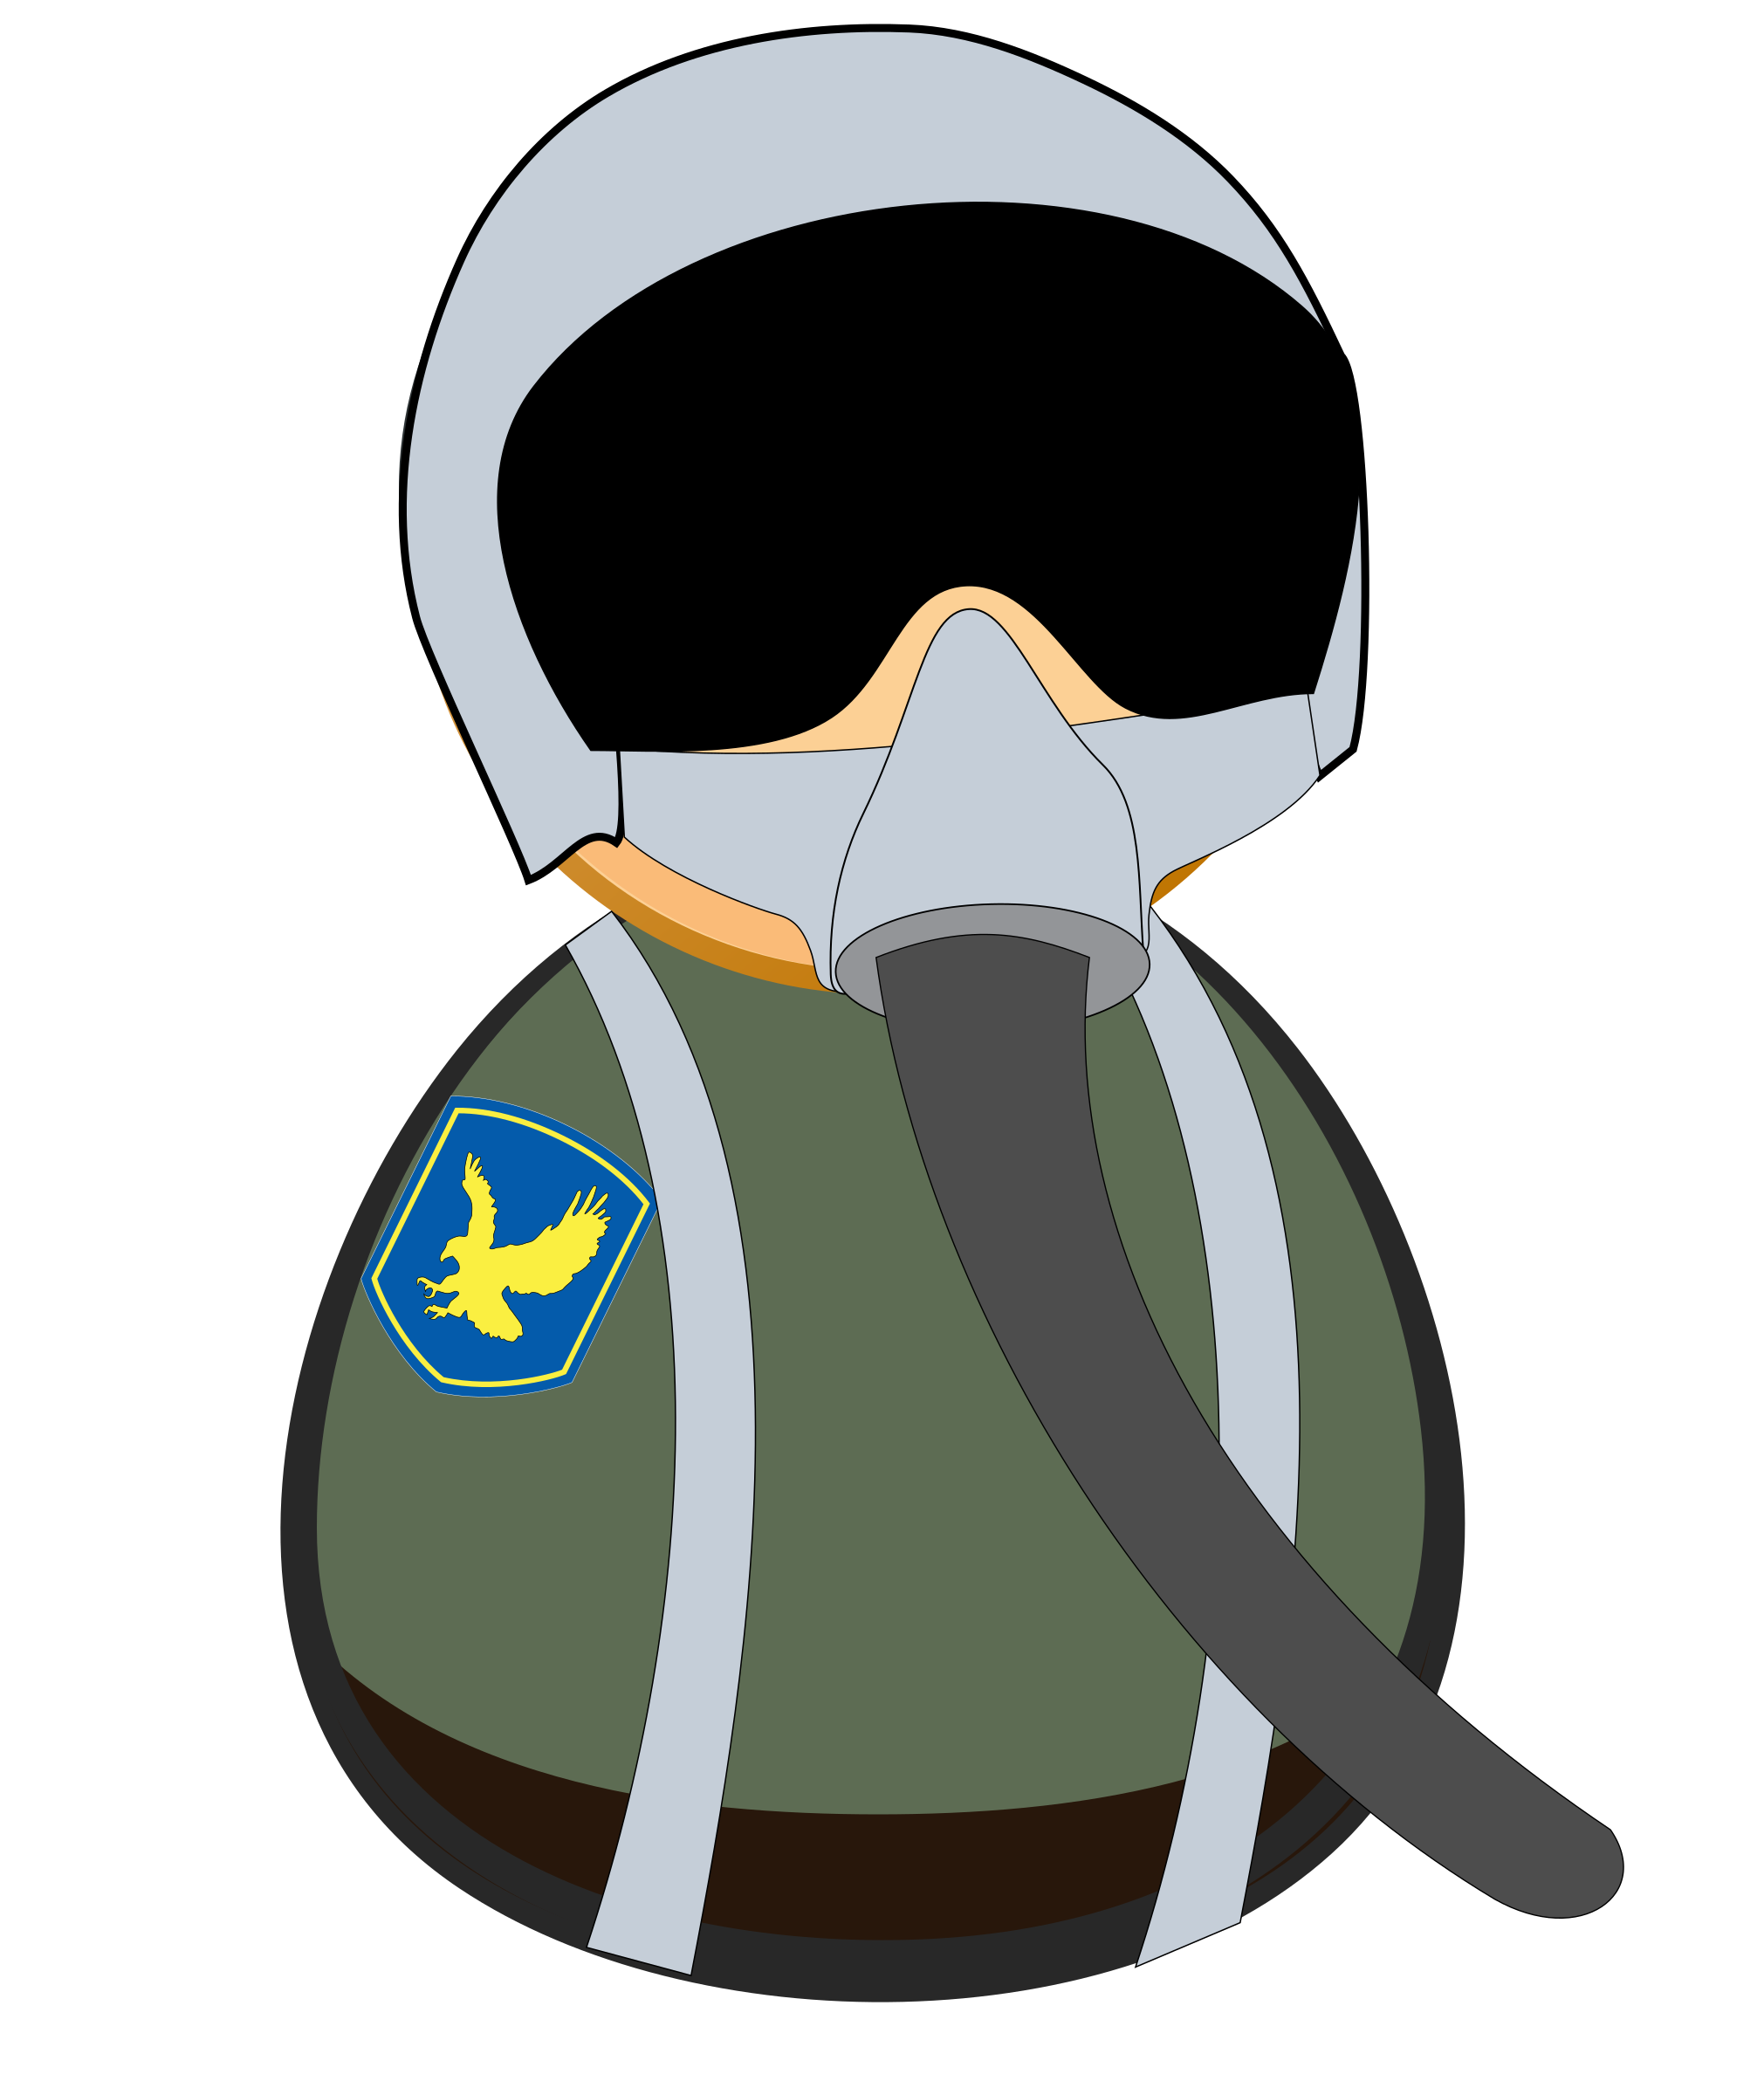 Fighter pilot icon by Juhele